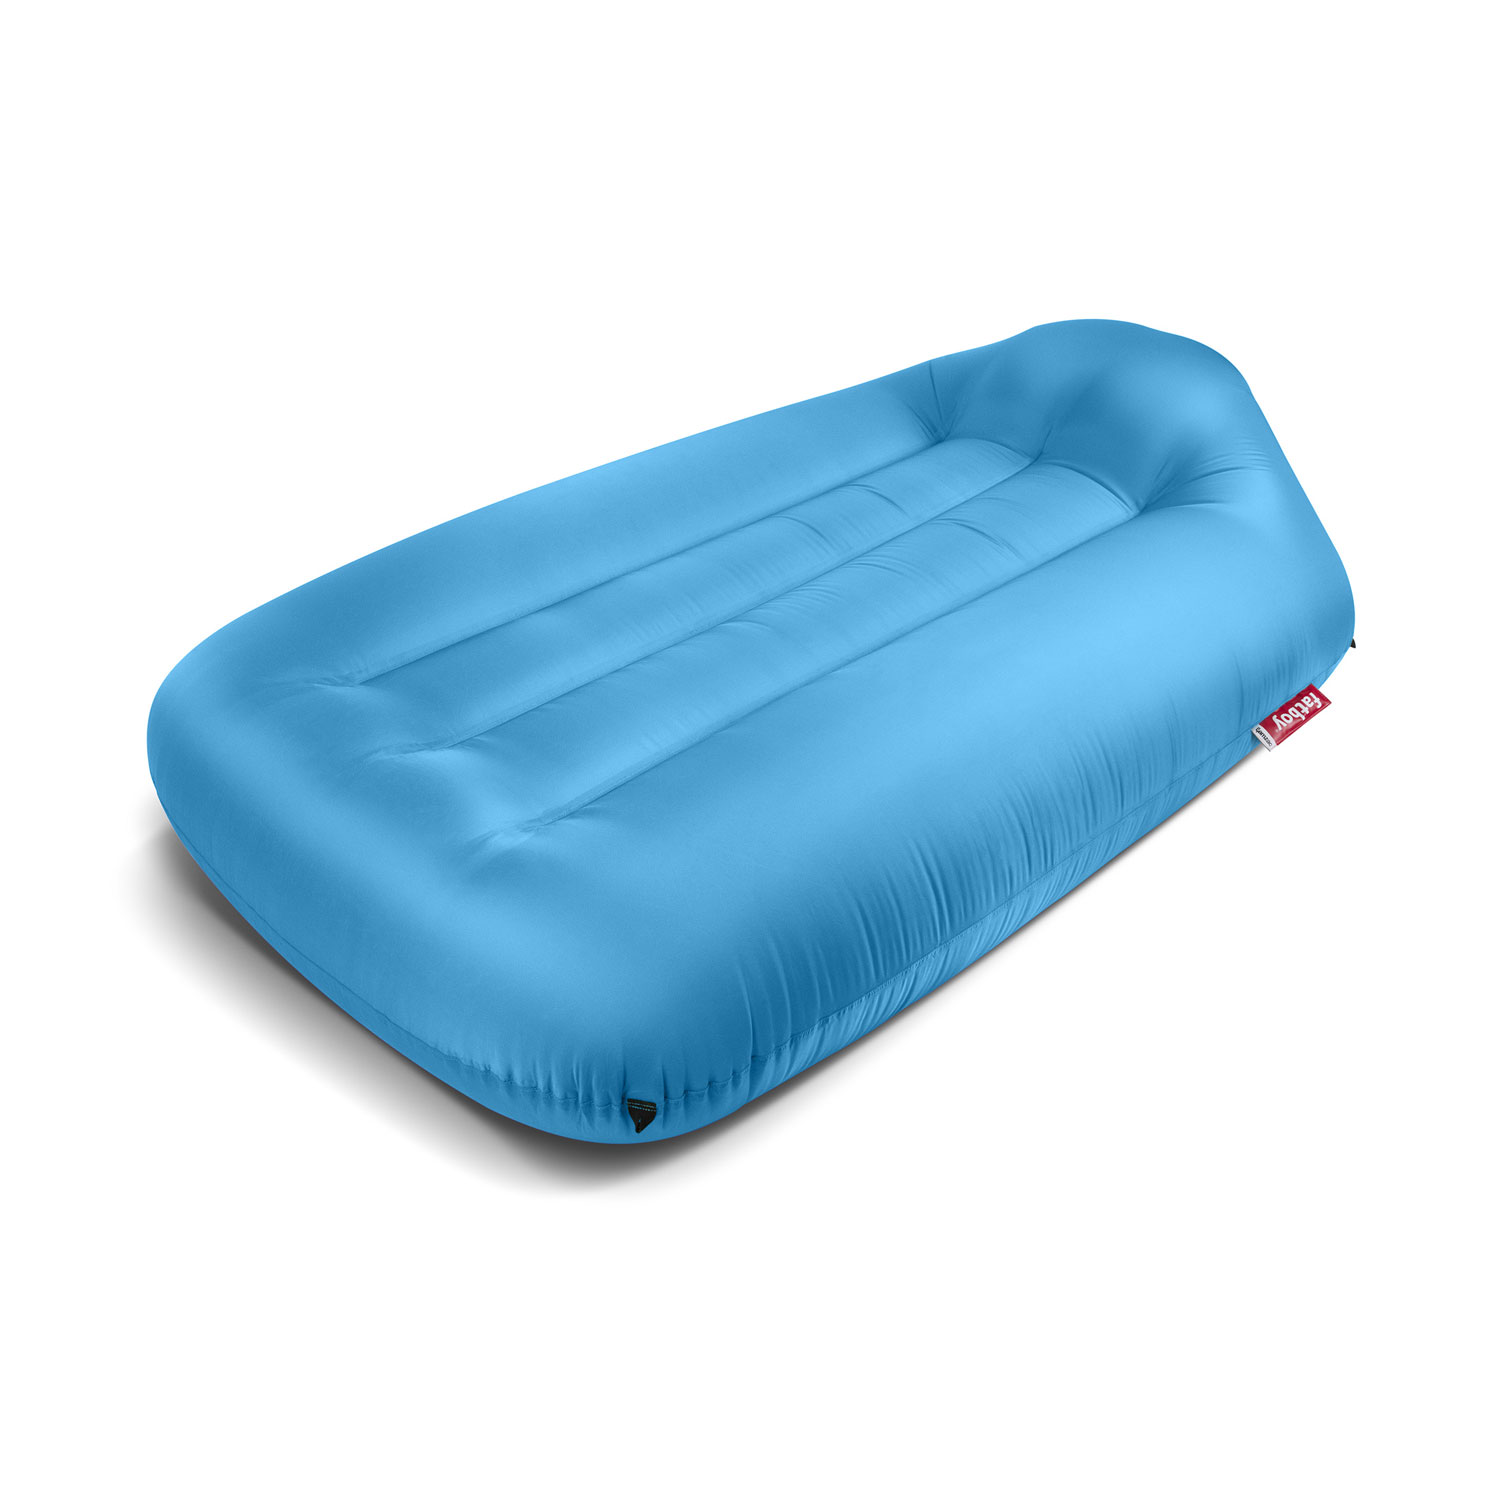 mattress size beds pump twin electric bed achim air thinkpawsitive inflatable co